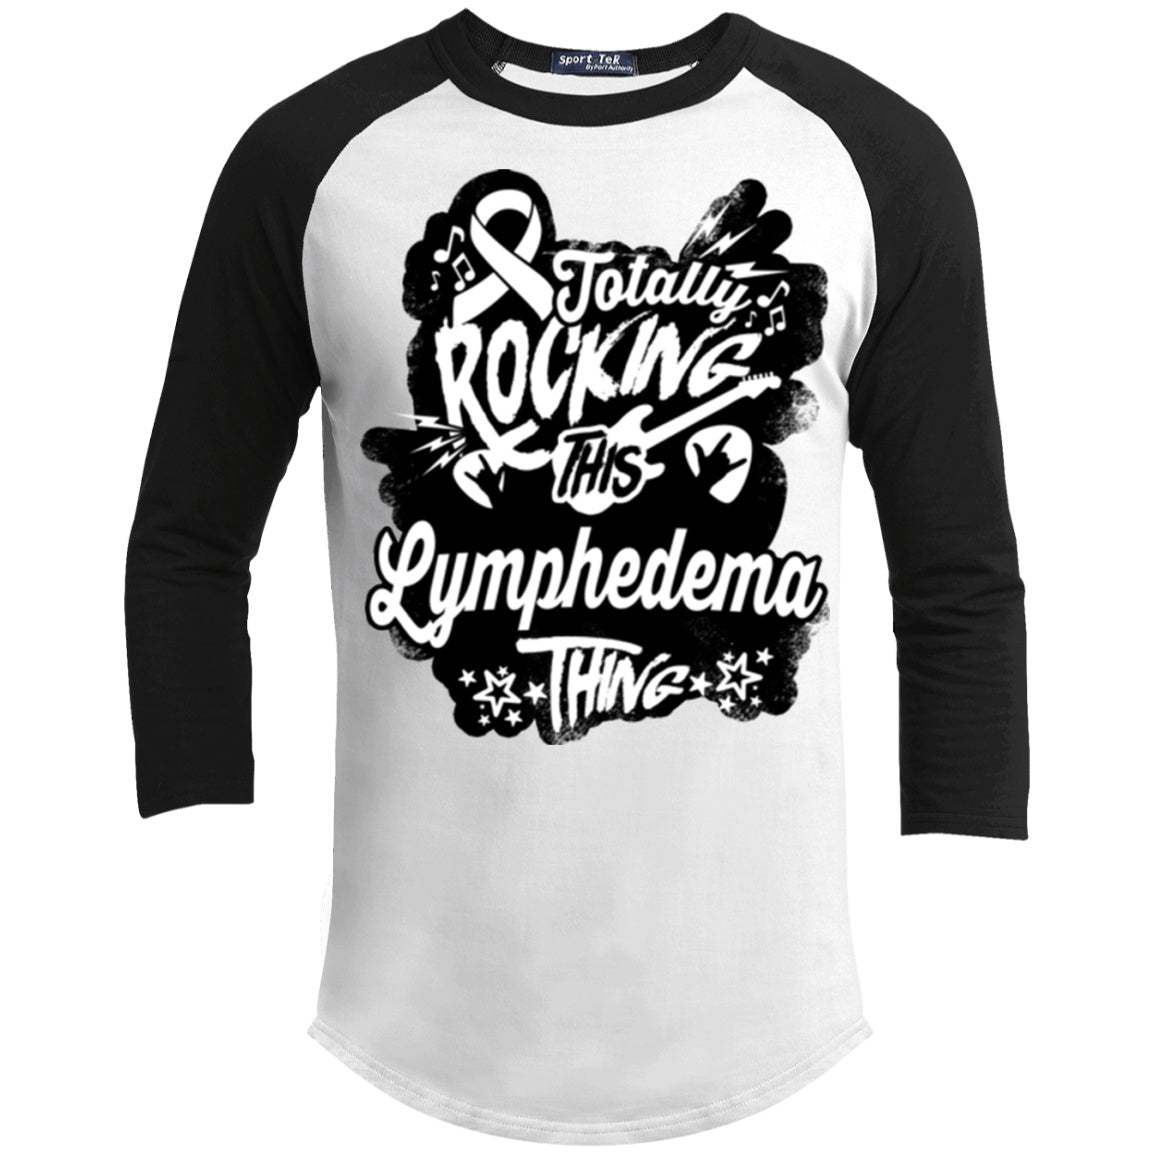 Rocking Lymphedema Baseball Shirt - The Unchargeables